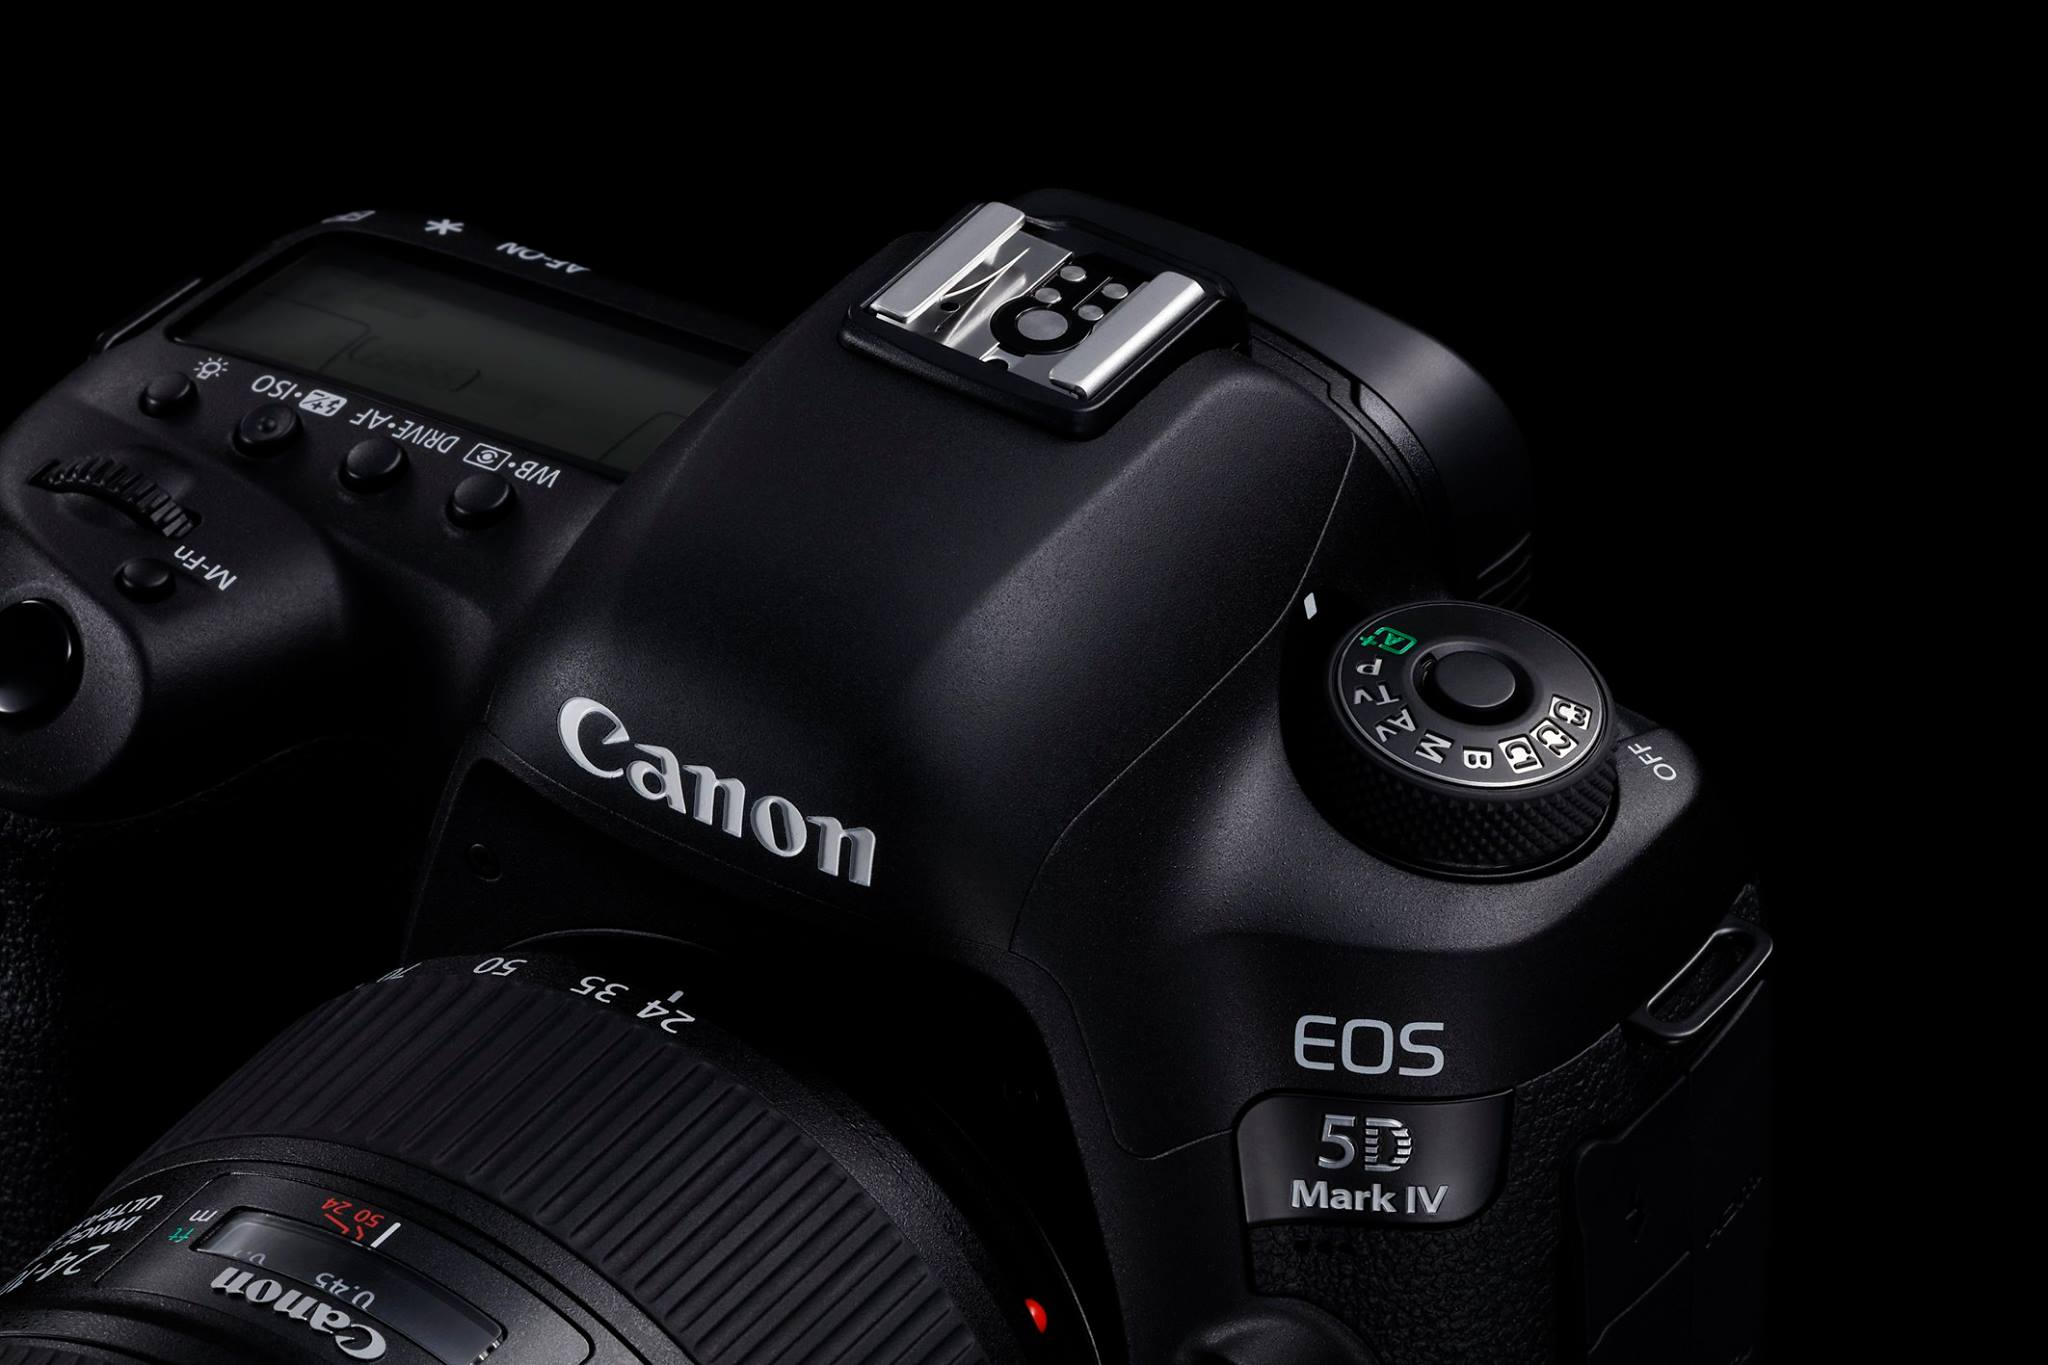 canon eos 5d mark iv instruction or user manual available for rh digitalphotographylive com eos 5d manual focus eos 5ds manual pdf